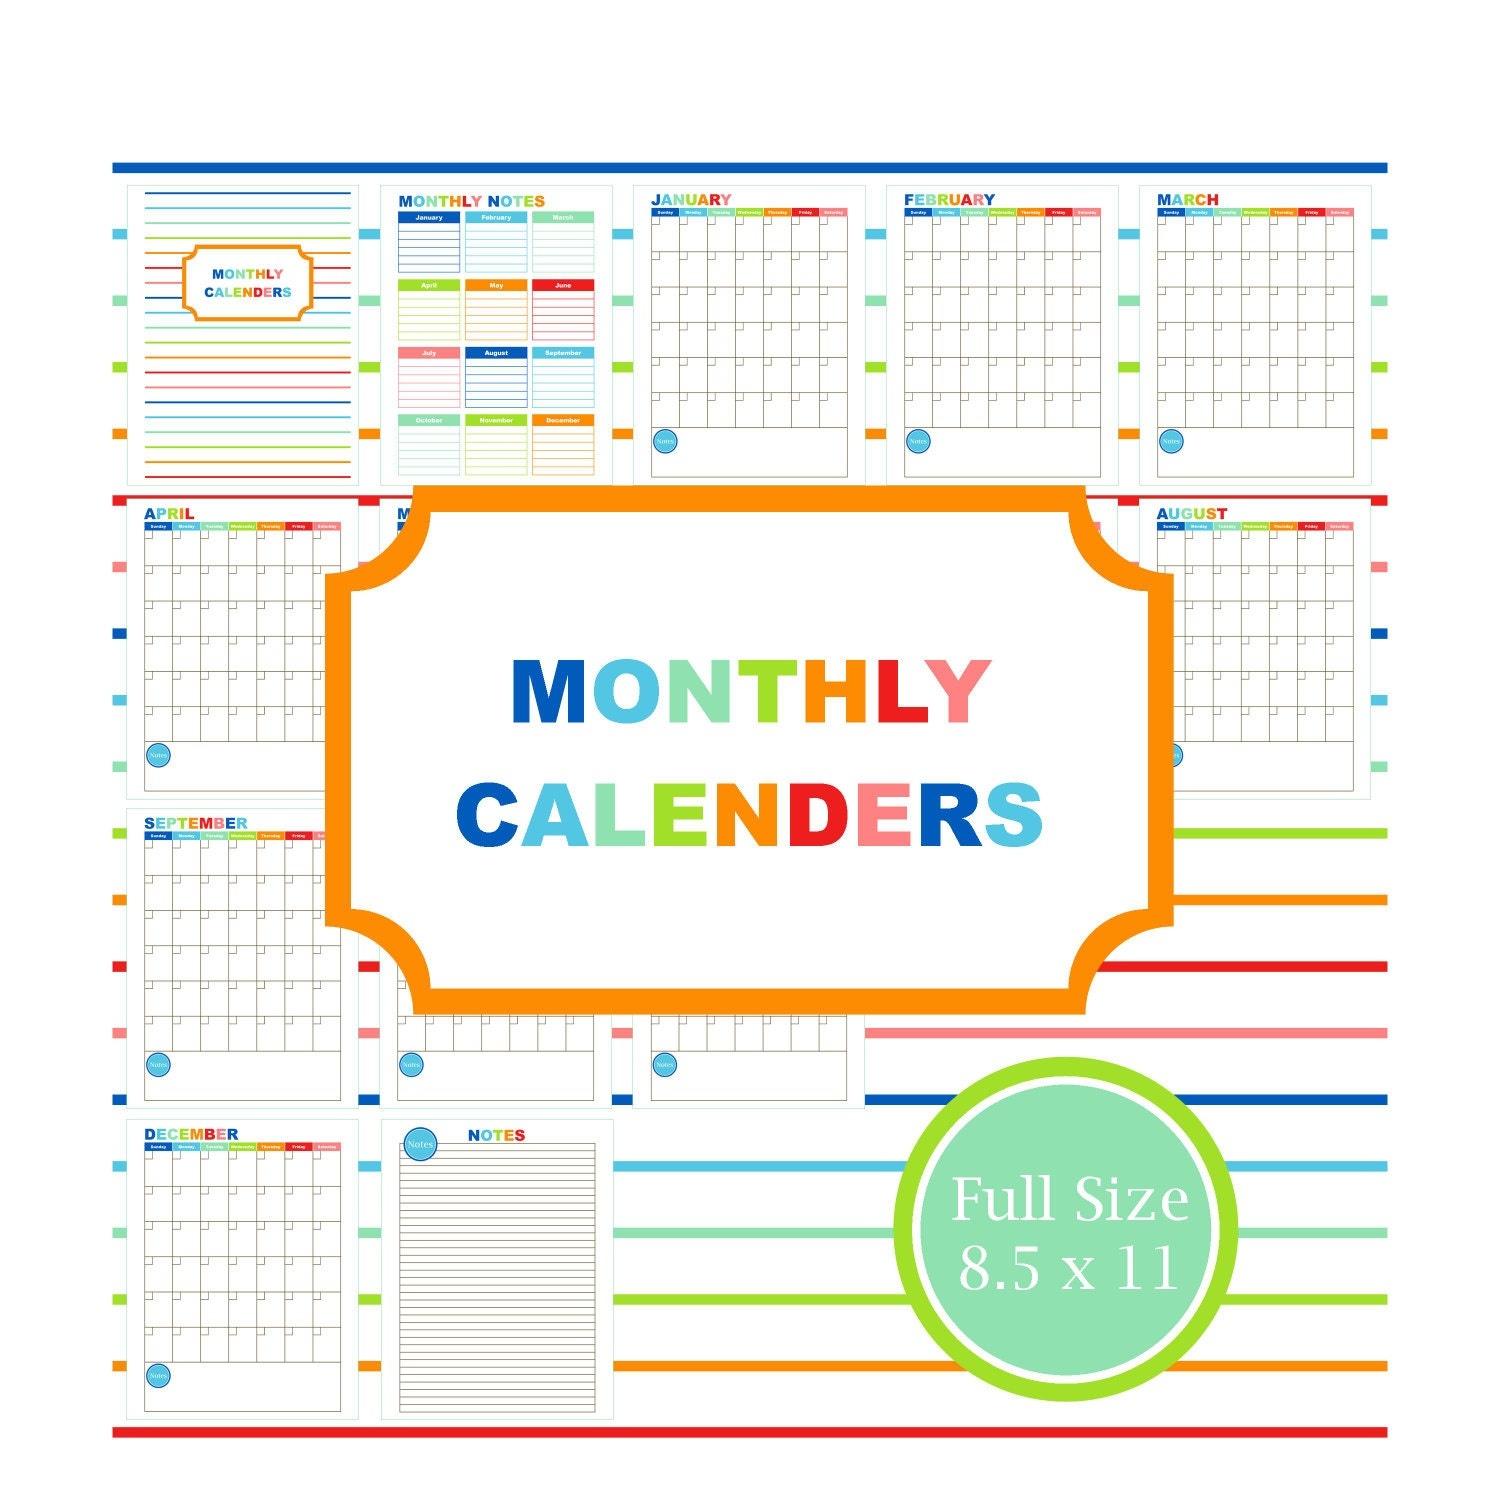 Blank Calendar Kit : Monthly calendar kit printable planner schedule